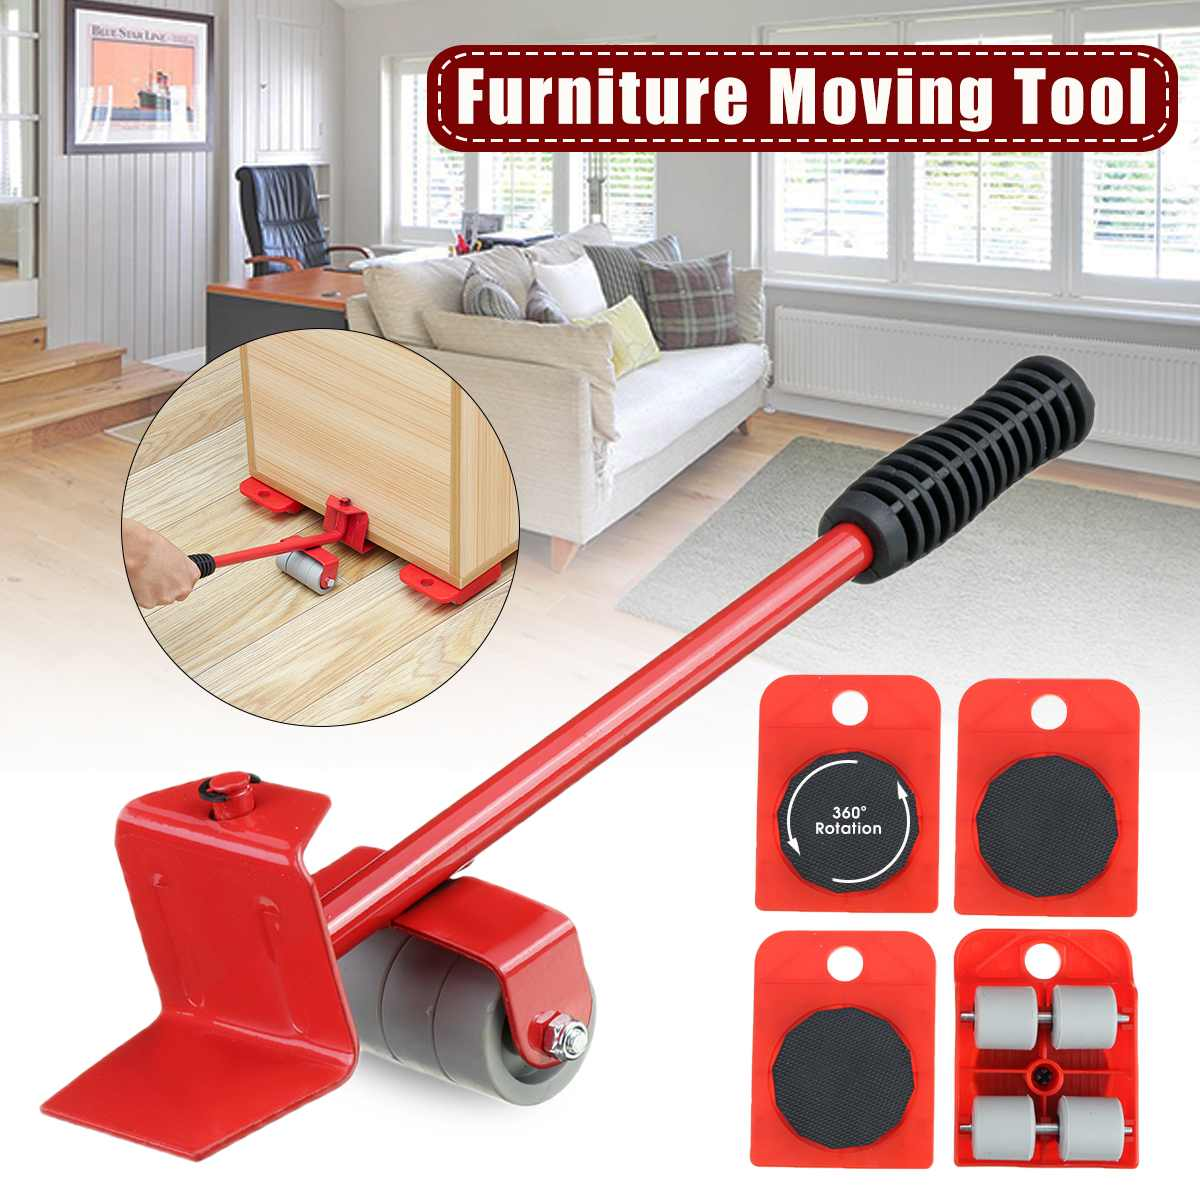 5 In 1 Furniture Mover Lifter Tool Set Furniture Transport Heavy Moving Tool Wheel Mover Roller Wheel Bar Hand Tools Set